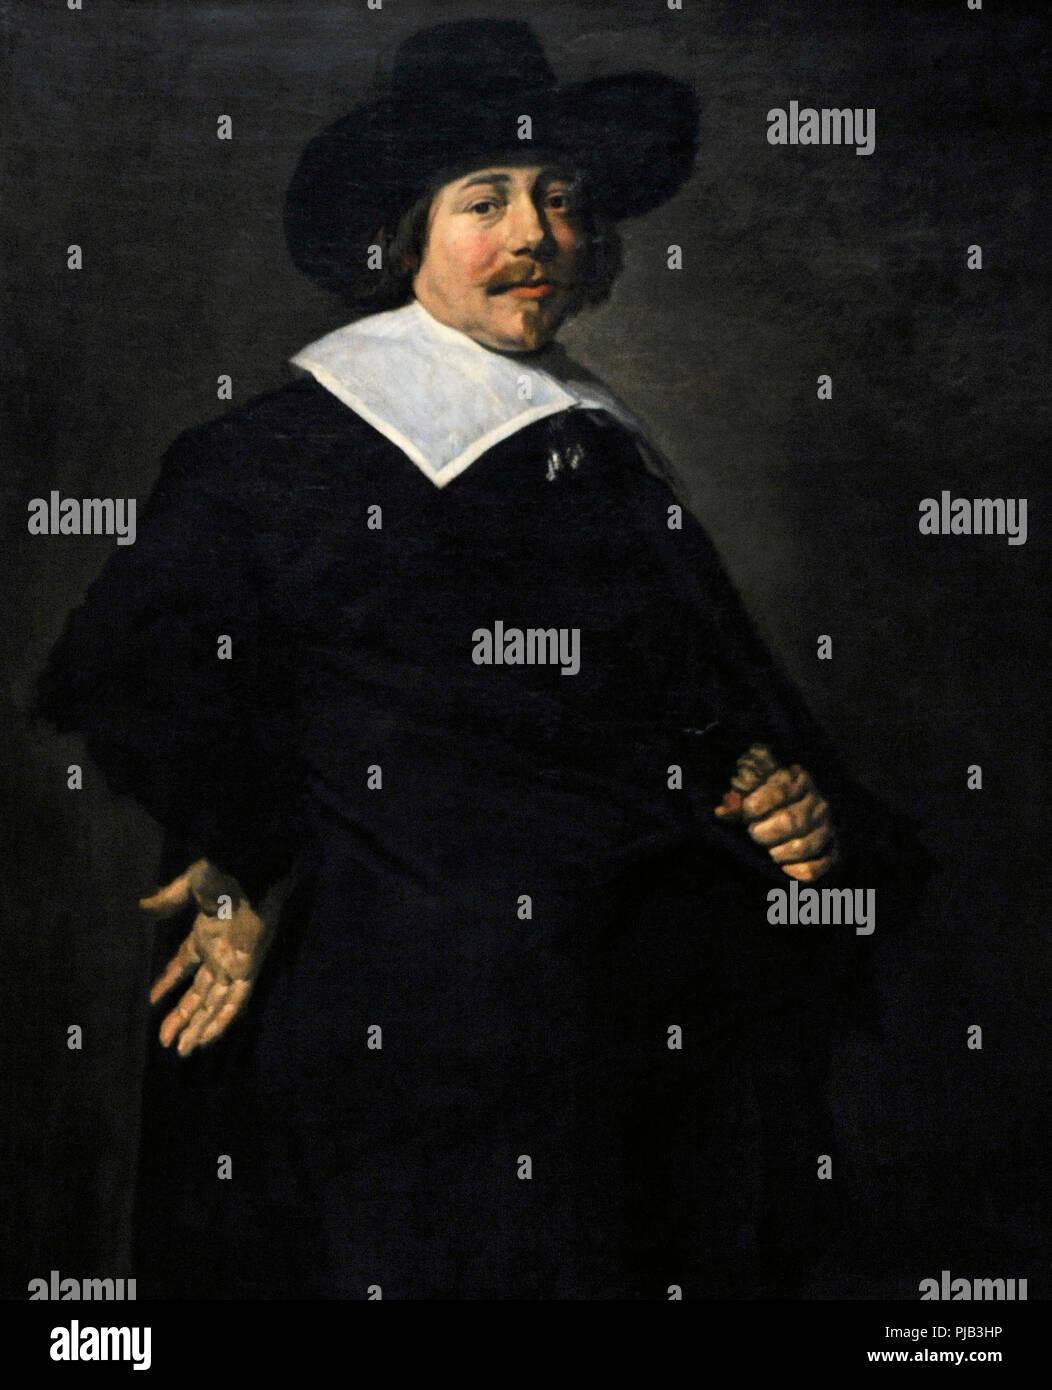 Frans Hals (1581/1585-1666). Dutch painter. Portrait of a man, Albert von Nierop?, ca.1640. Wallraf-Richartz Museum. Cologne. Germany. - Stock Image